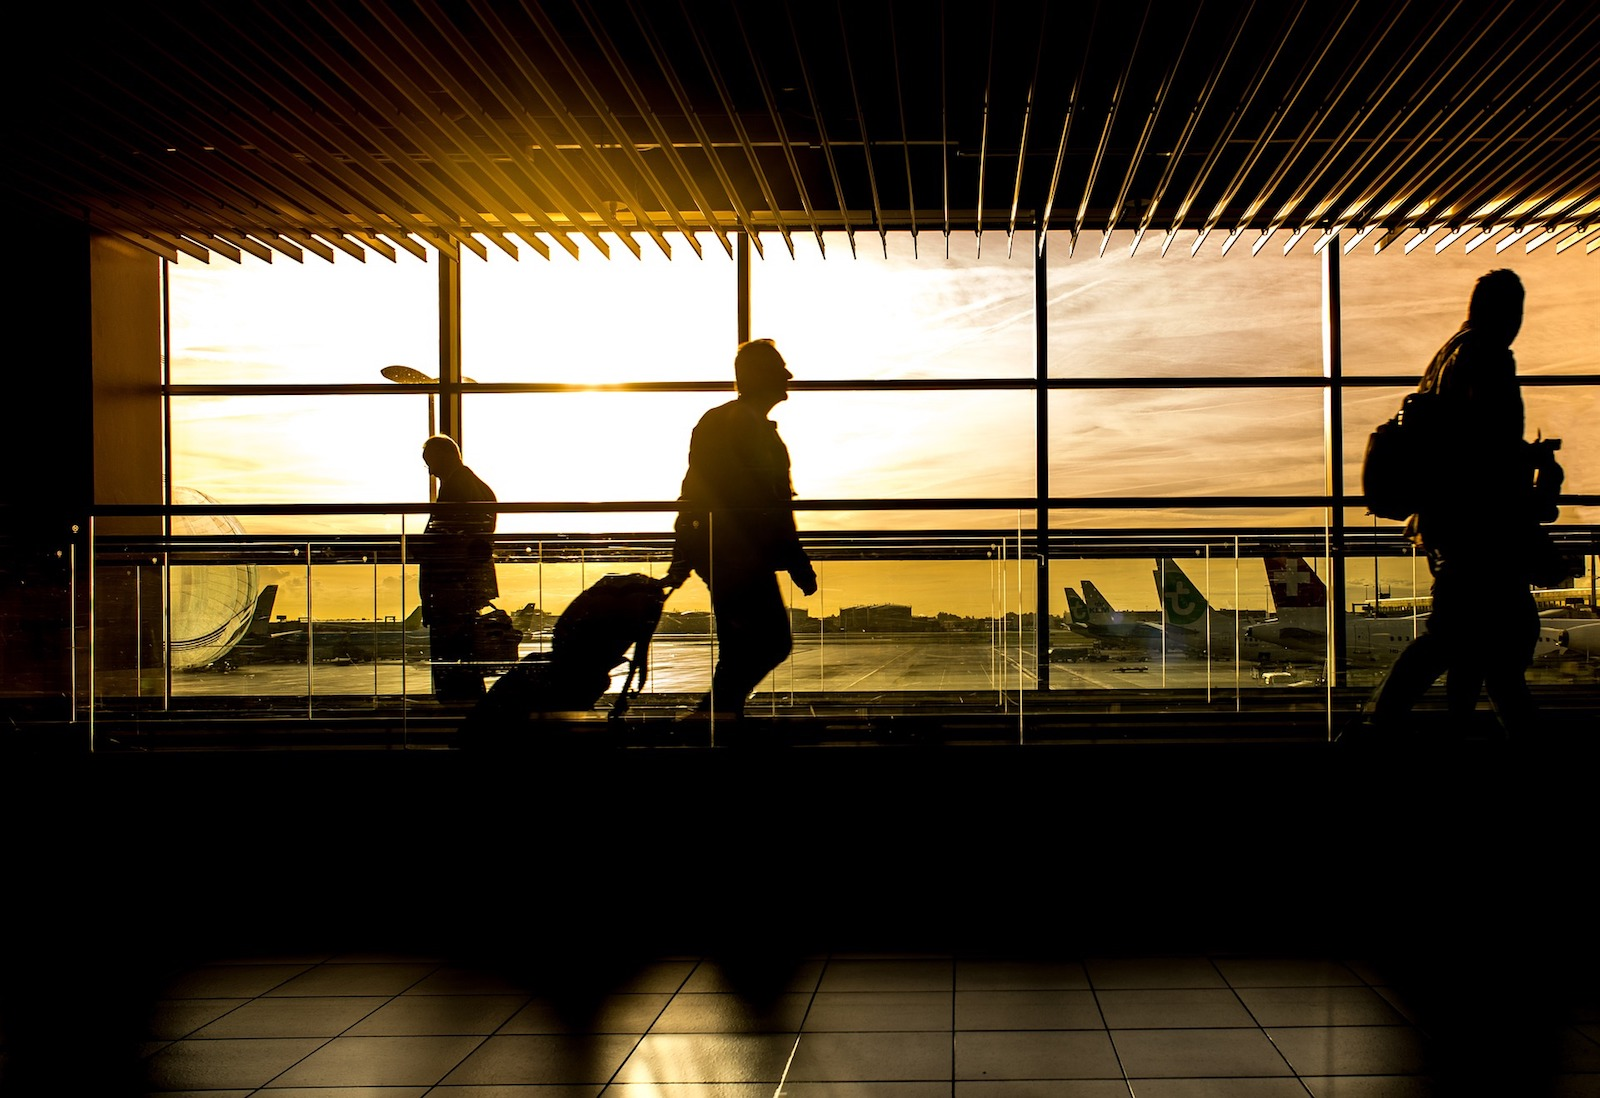 New Restriction The Club Airport Lounges